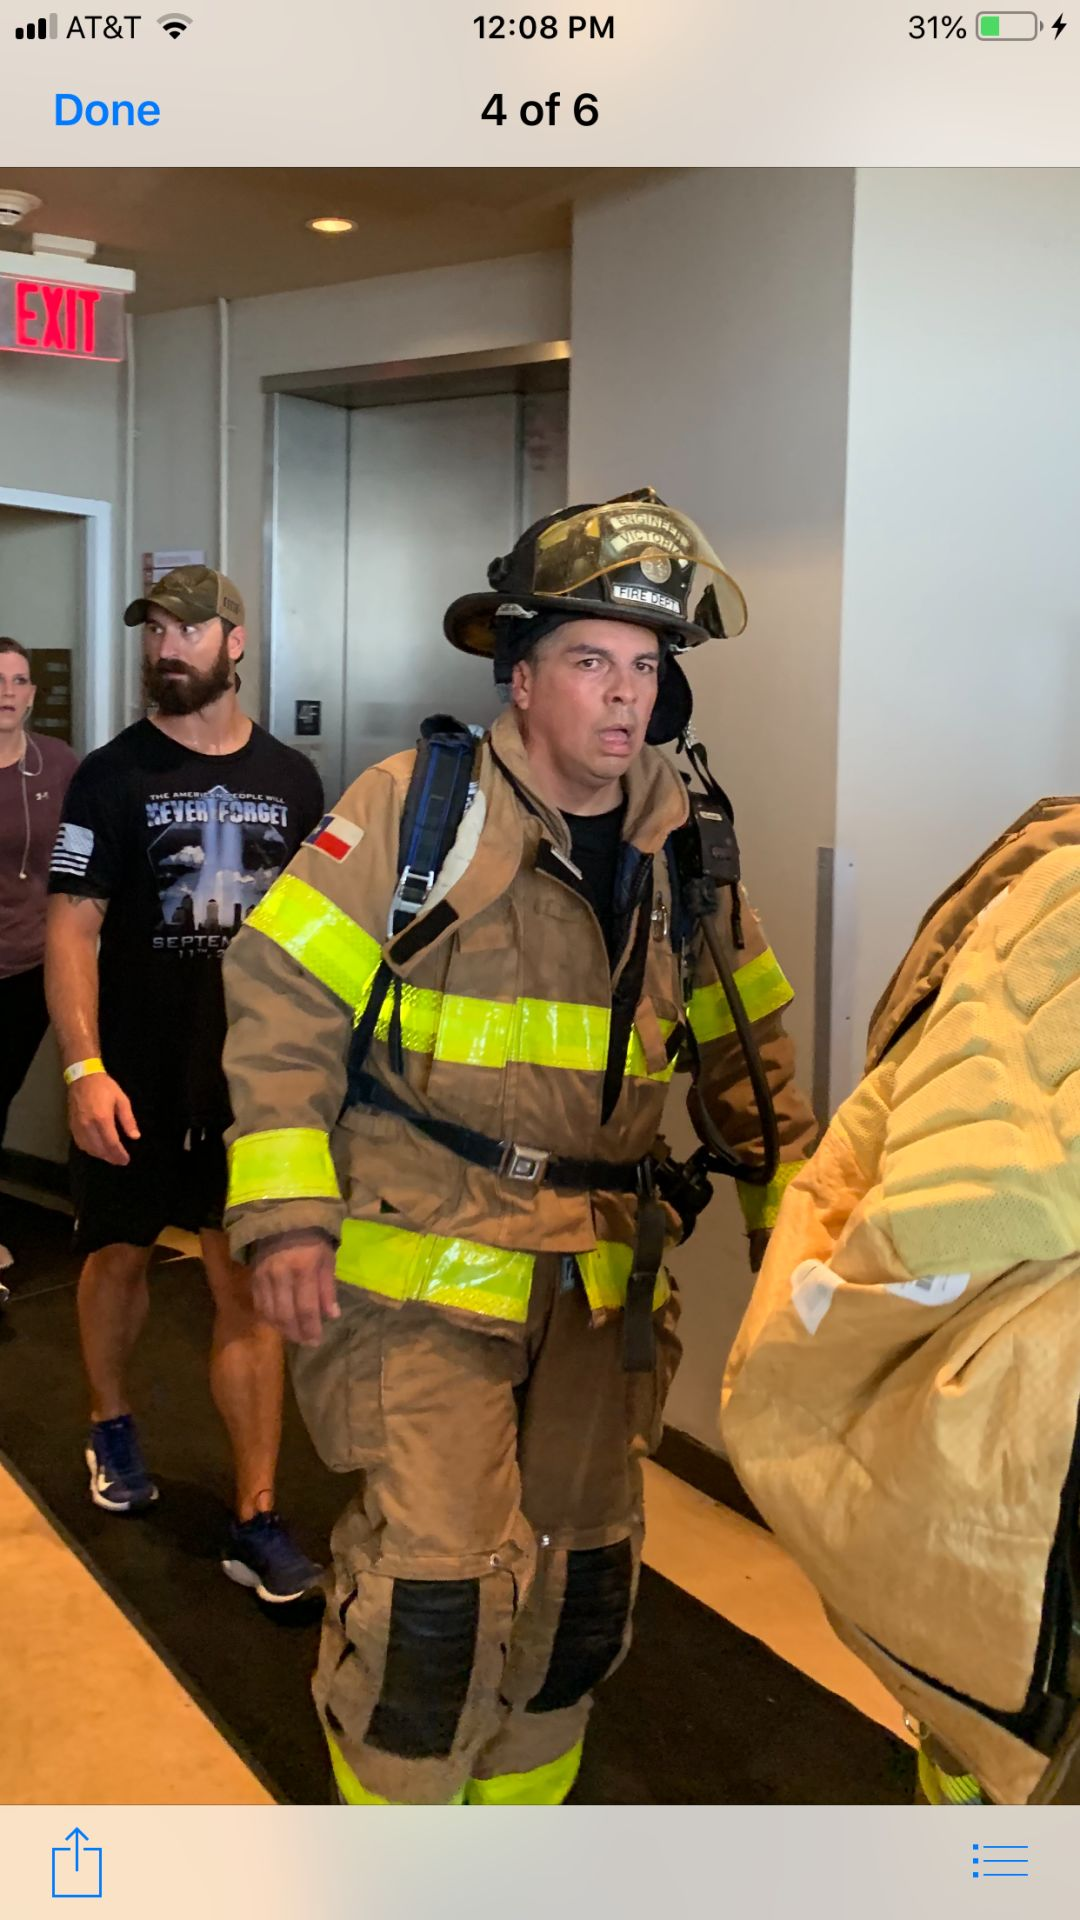 Victoria firefighters climb Tower of Americas